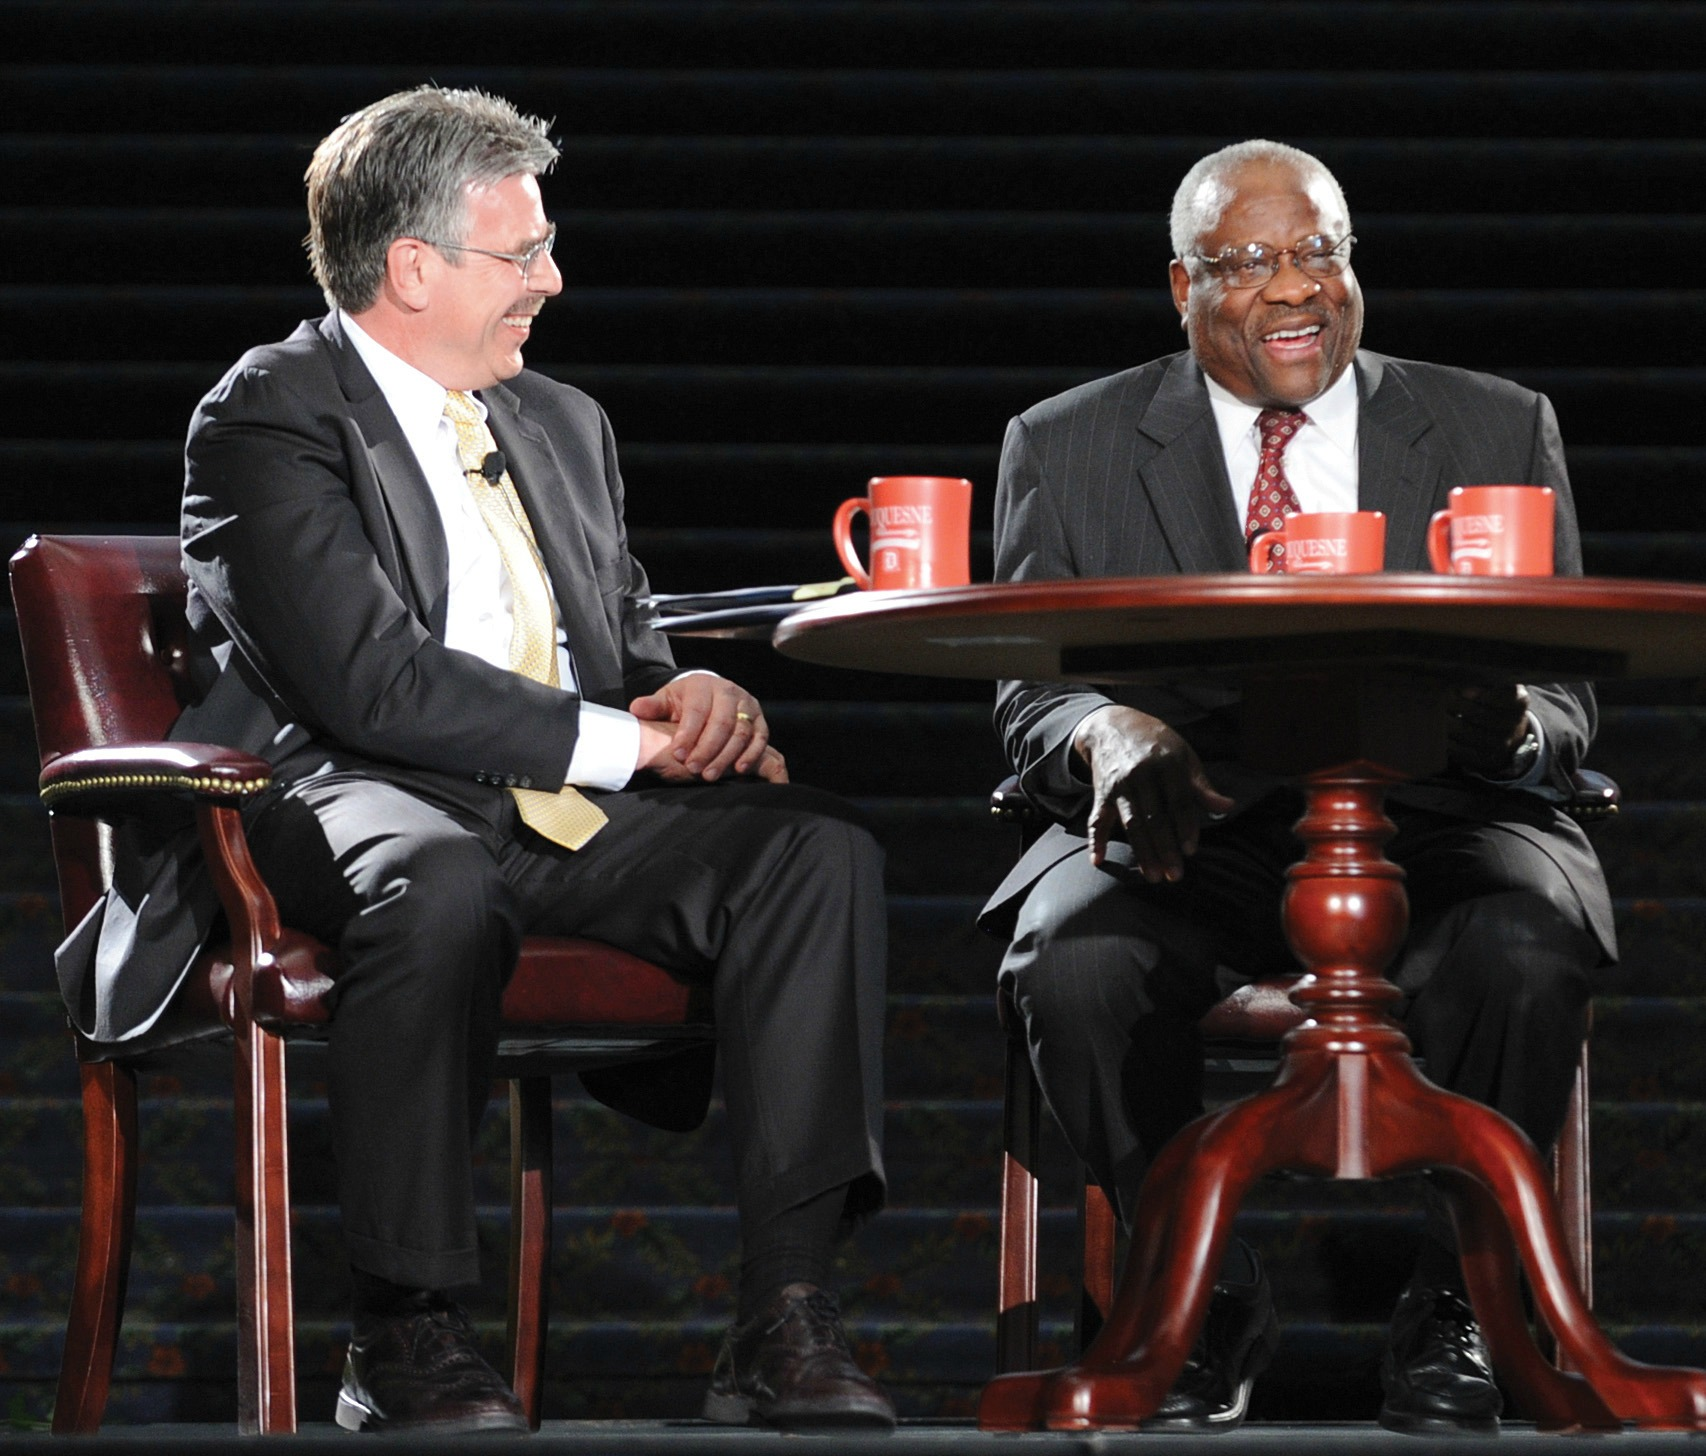 President Gormley with Supreme Court Justice Clarence Thomas